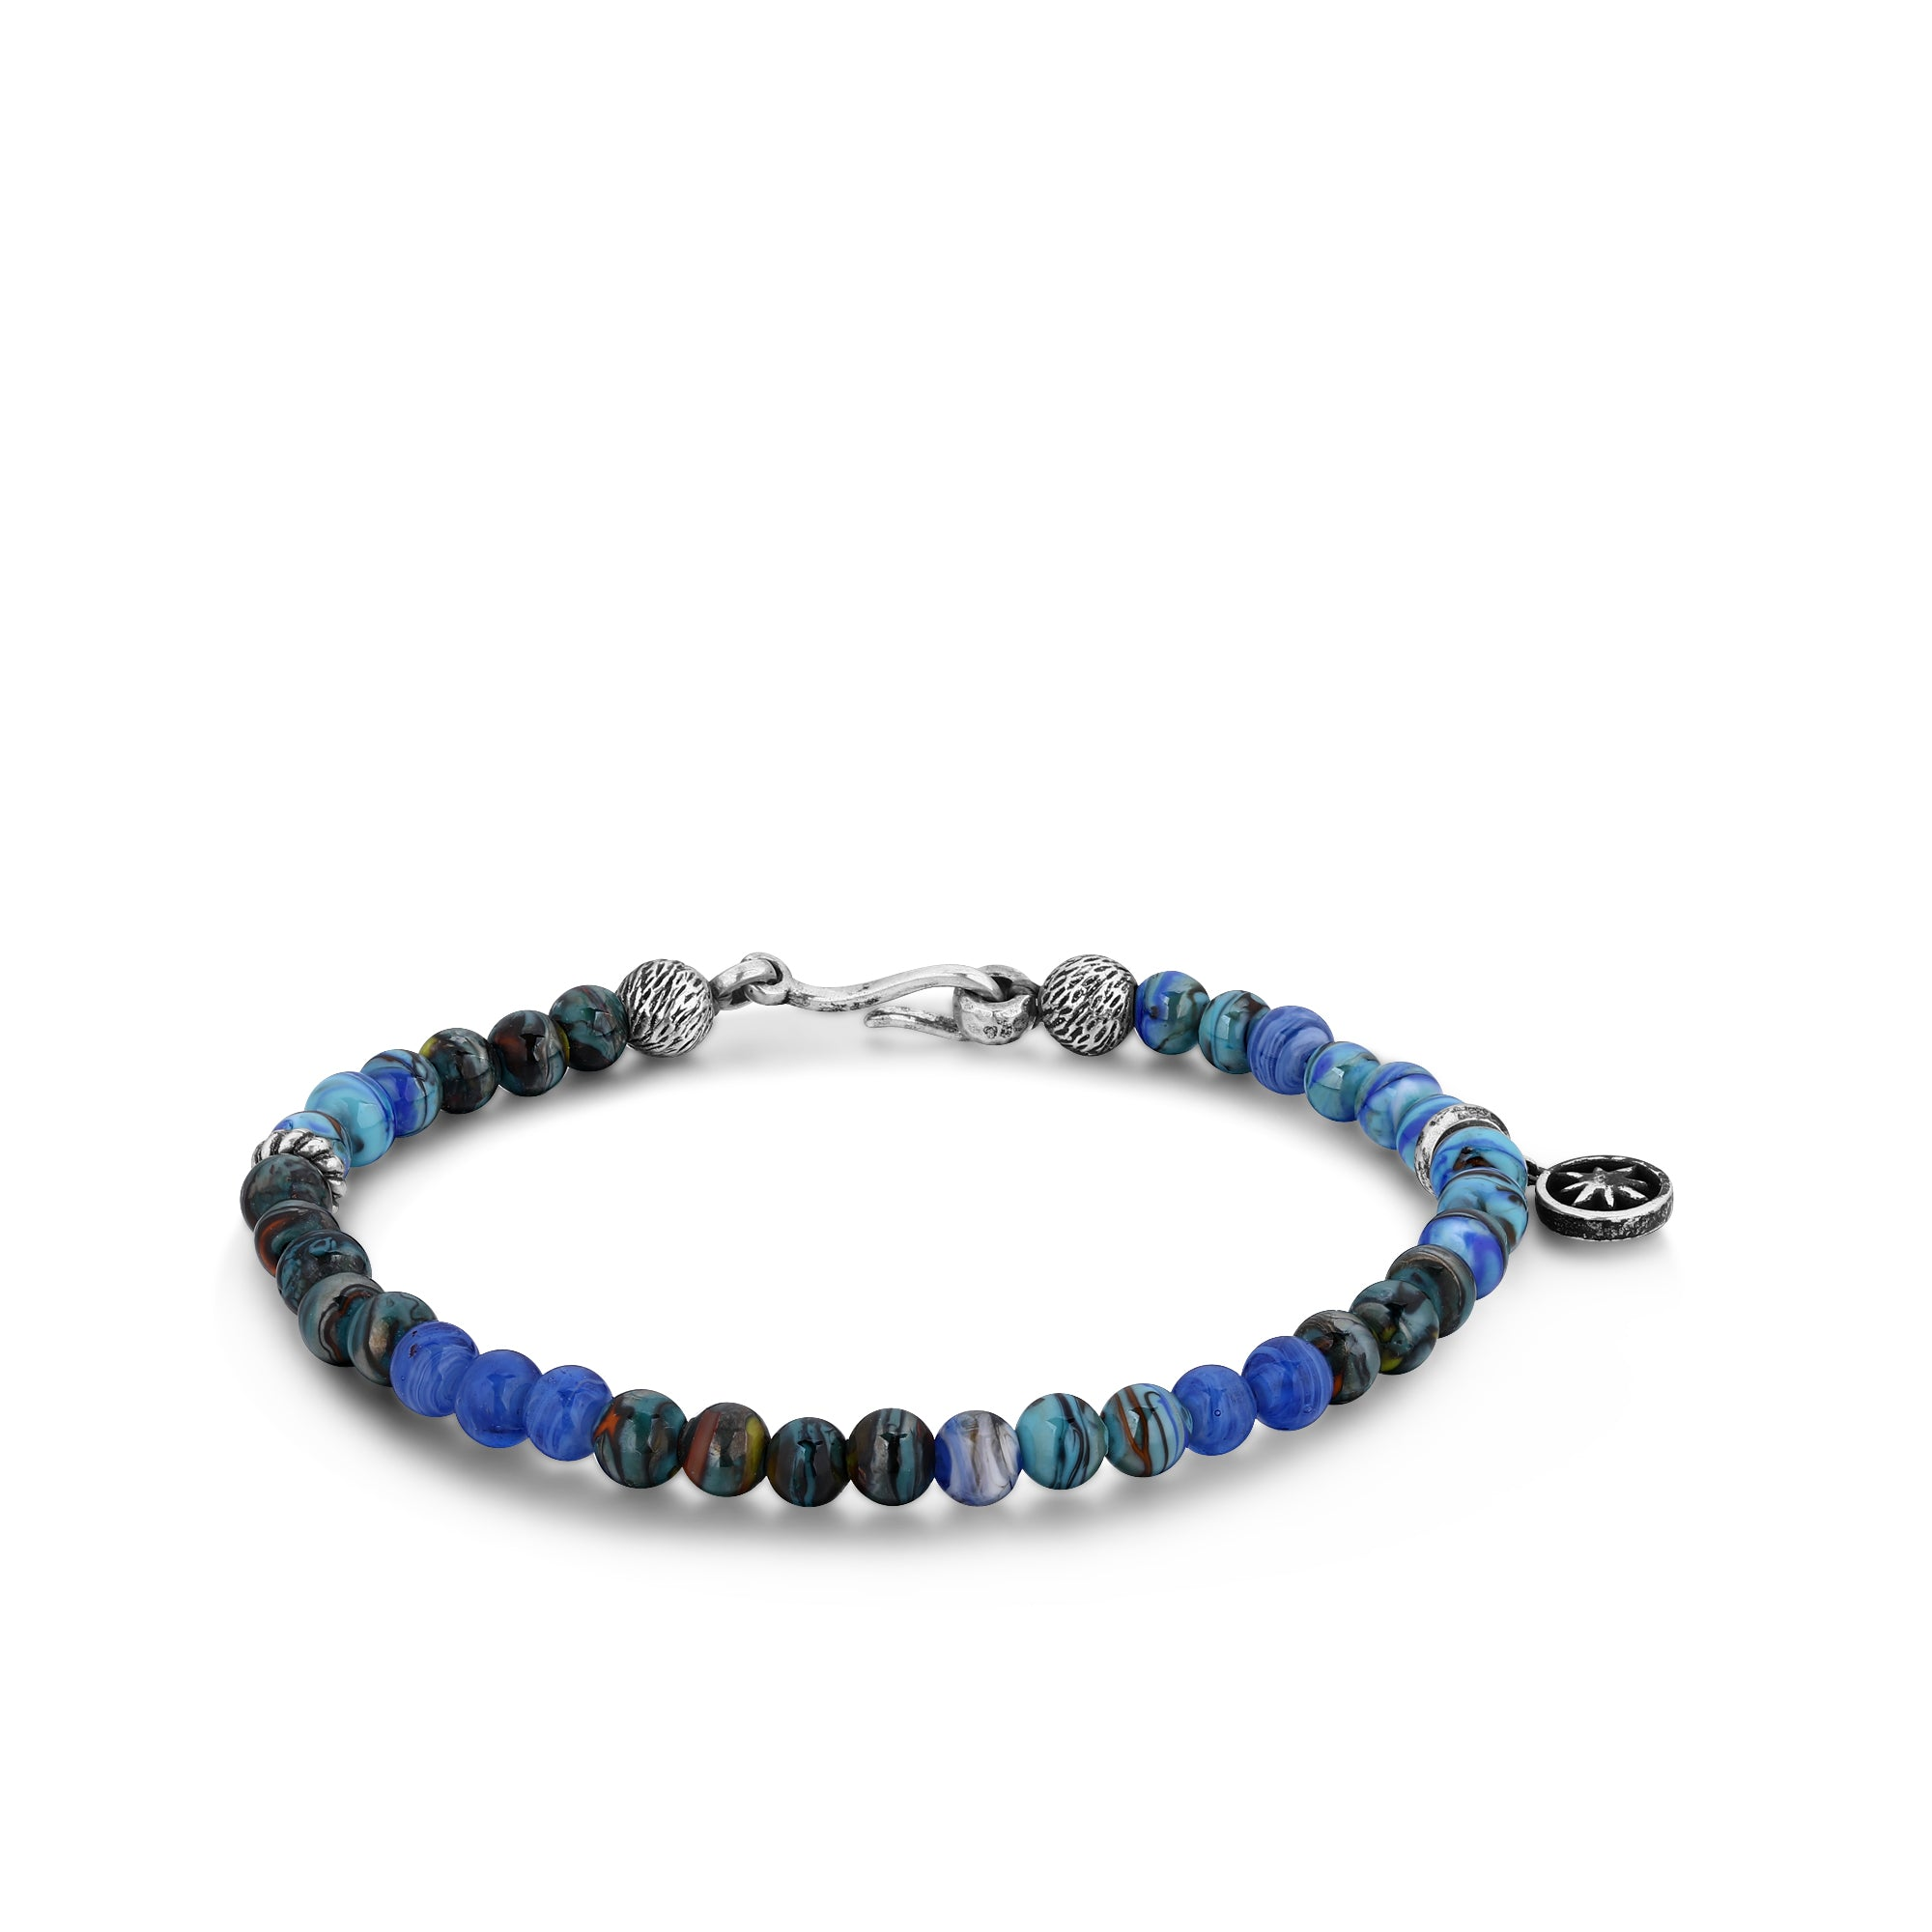 Silver Bracelet with Black and Blue Murano Beads and Hook Clasp